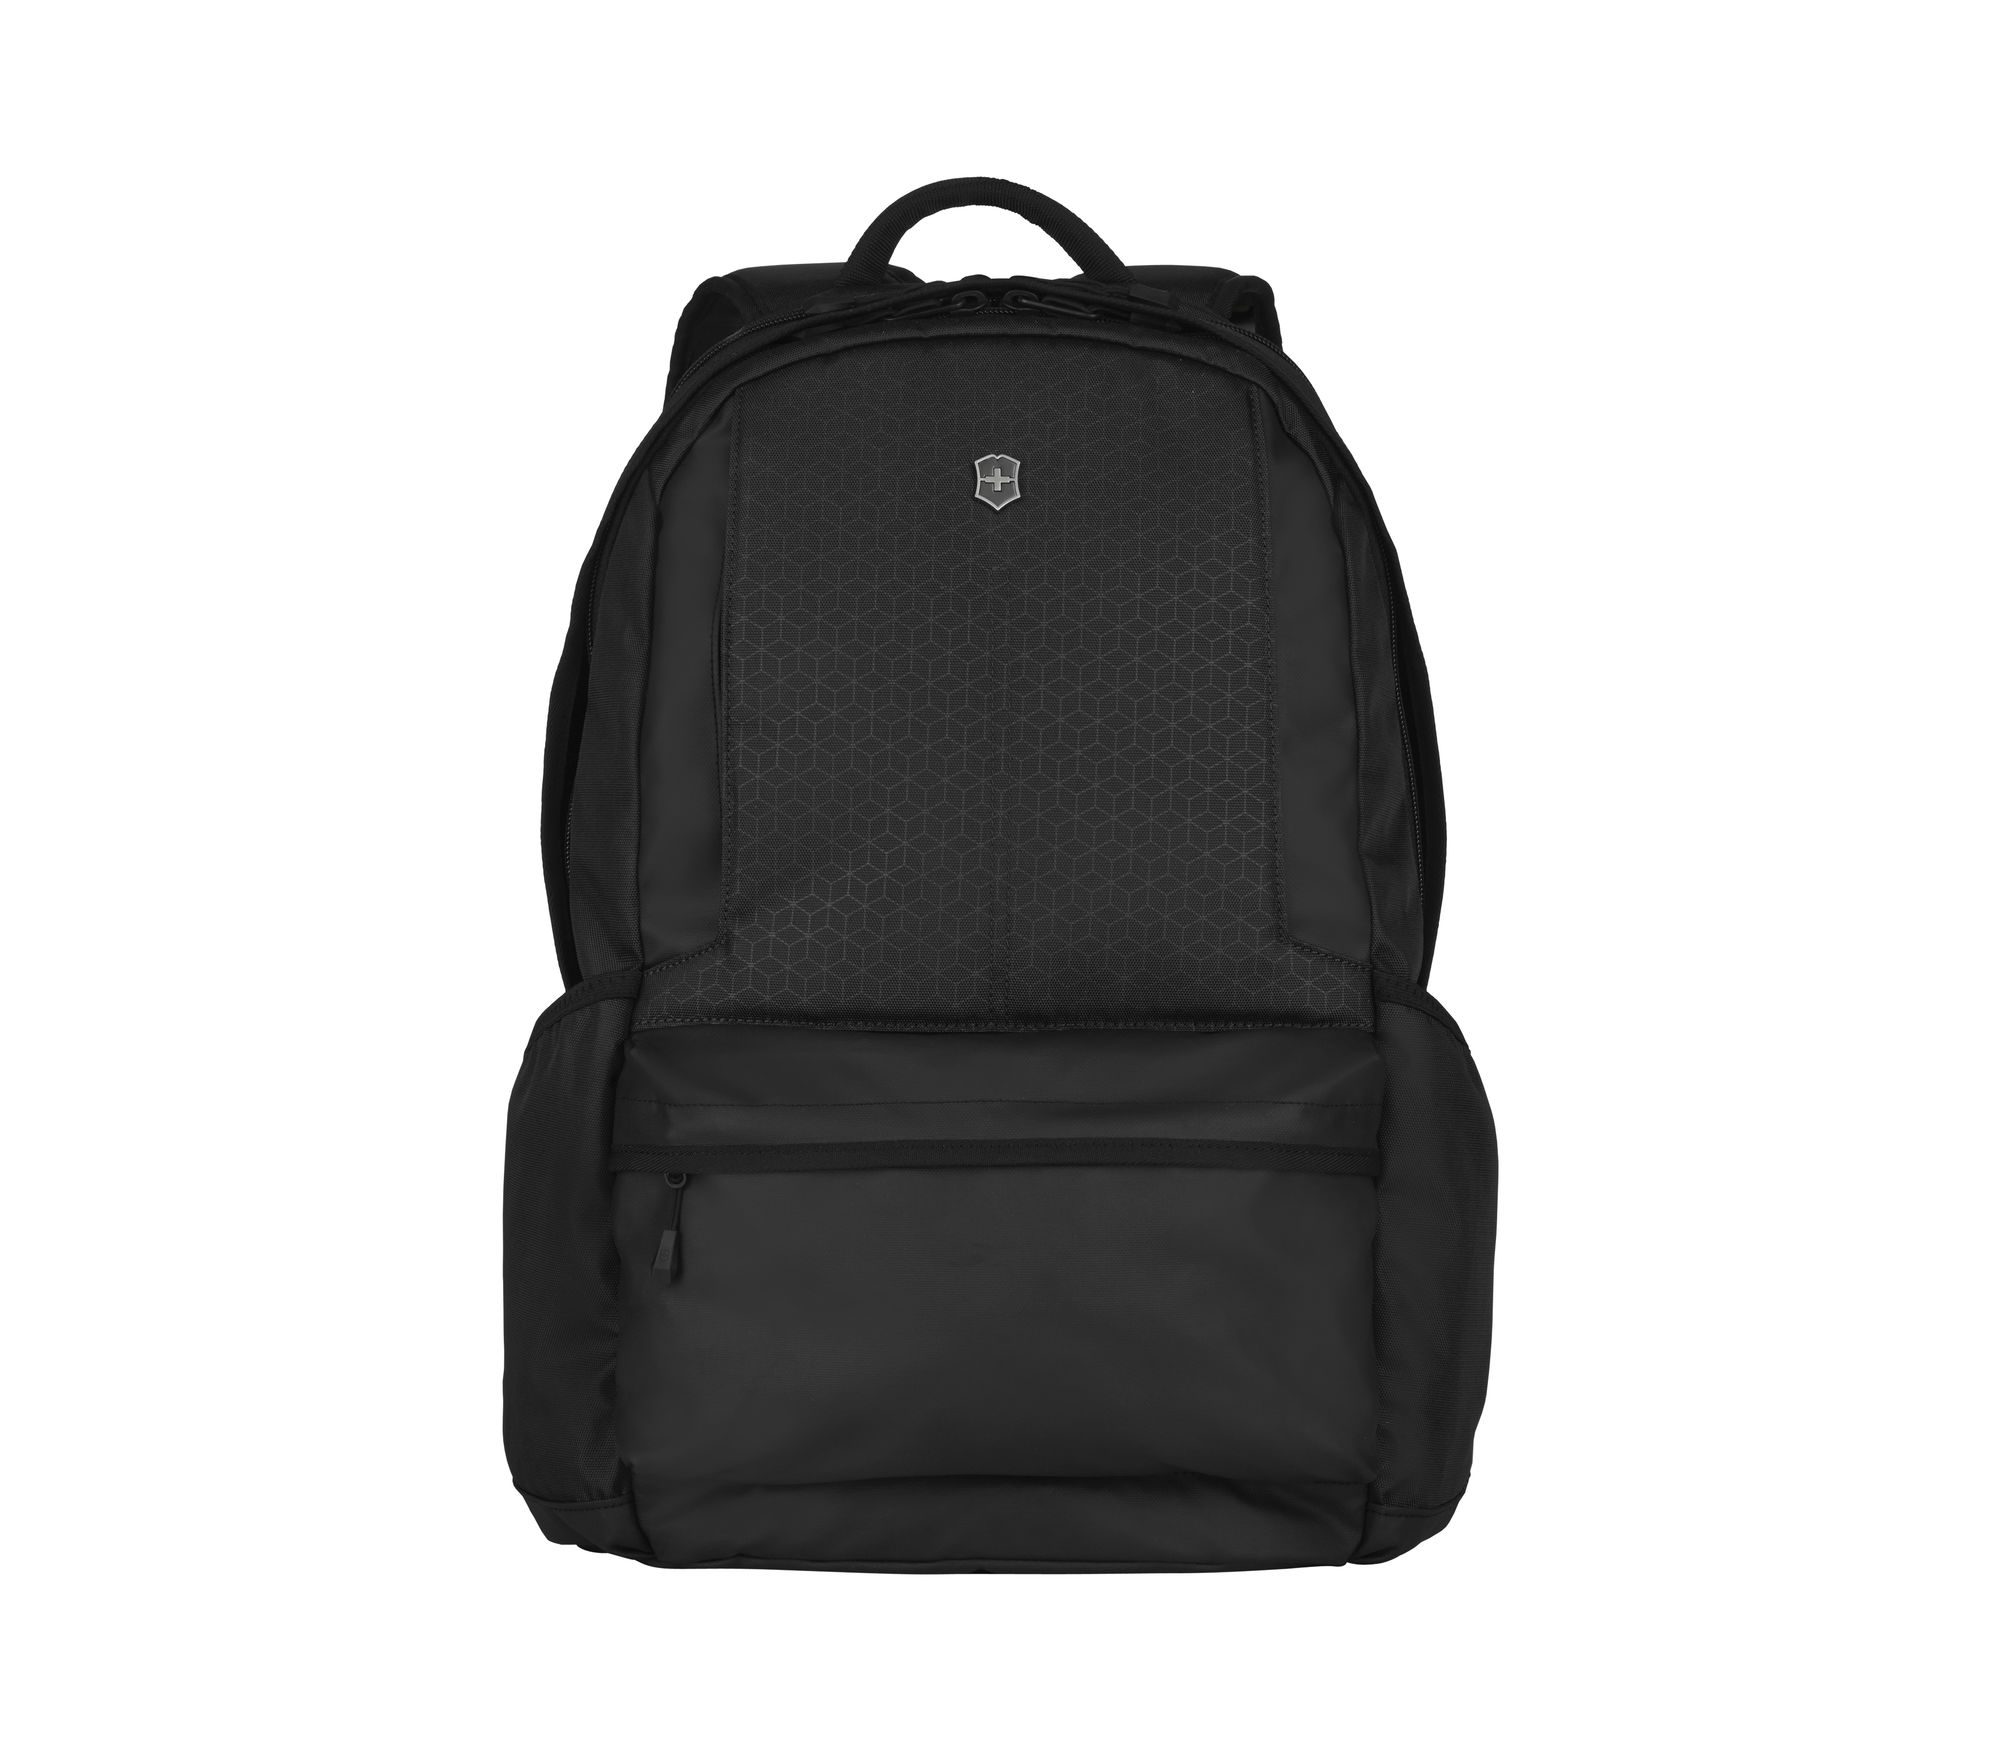 Victorinox Altmont Original Standard Backpack Black